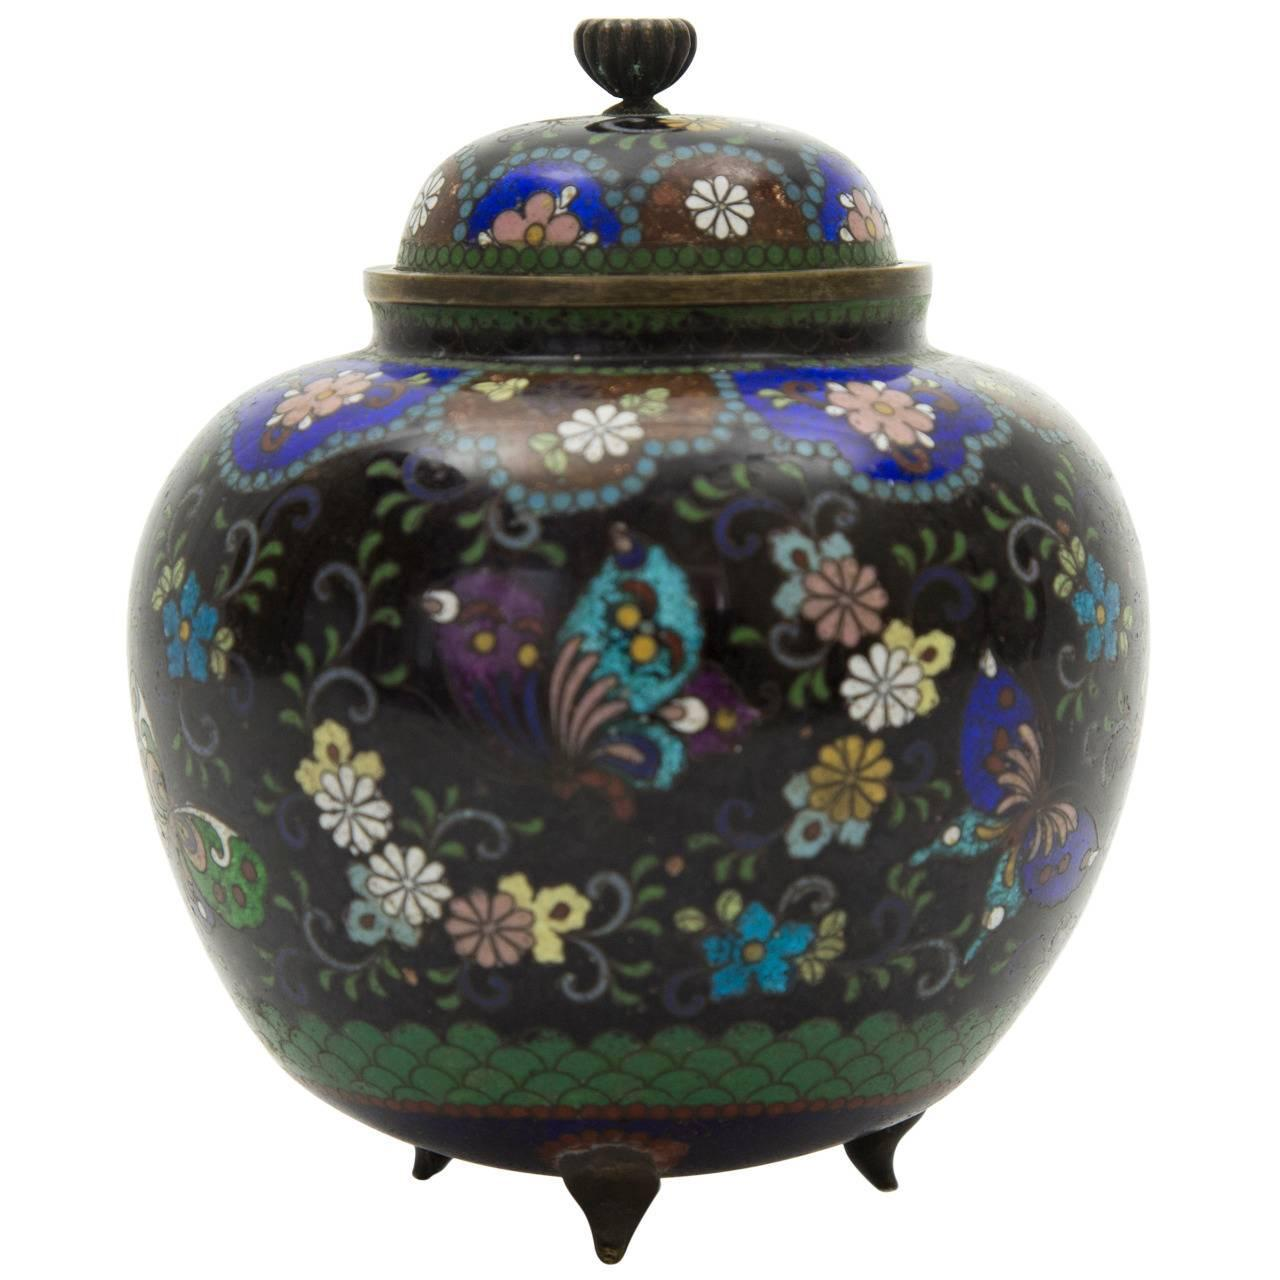 Relatively 19th Century Japanese Cloisonné Ginger Jar For Sale at 1stdibs XT99